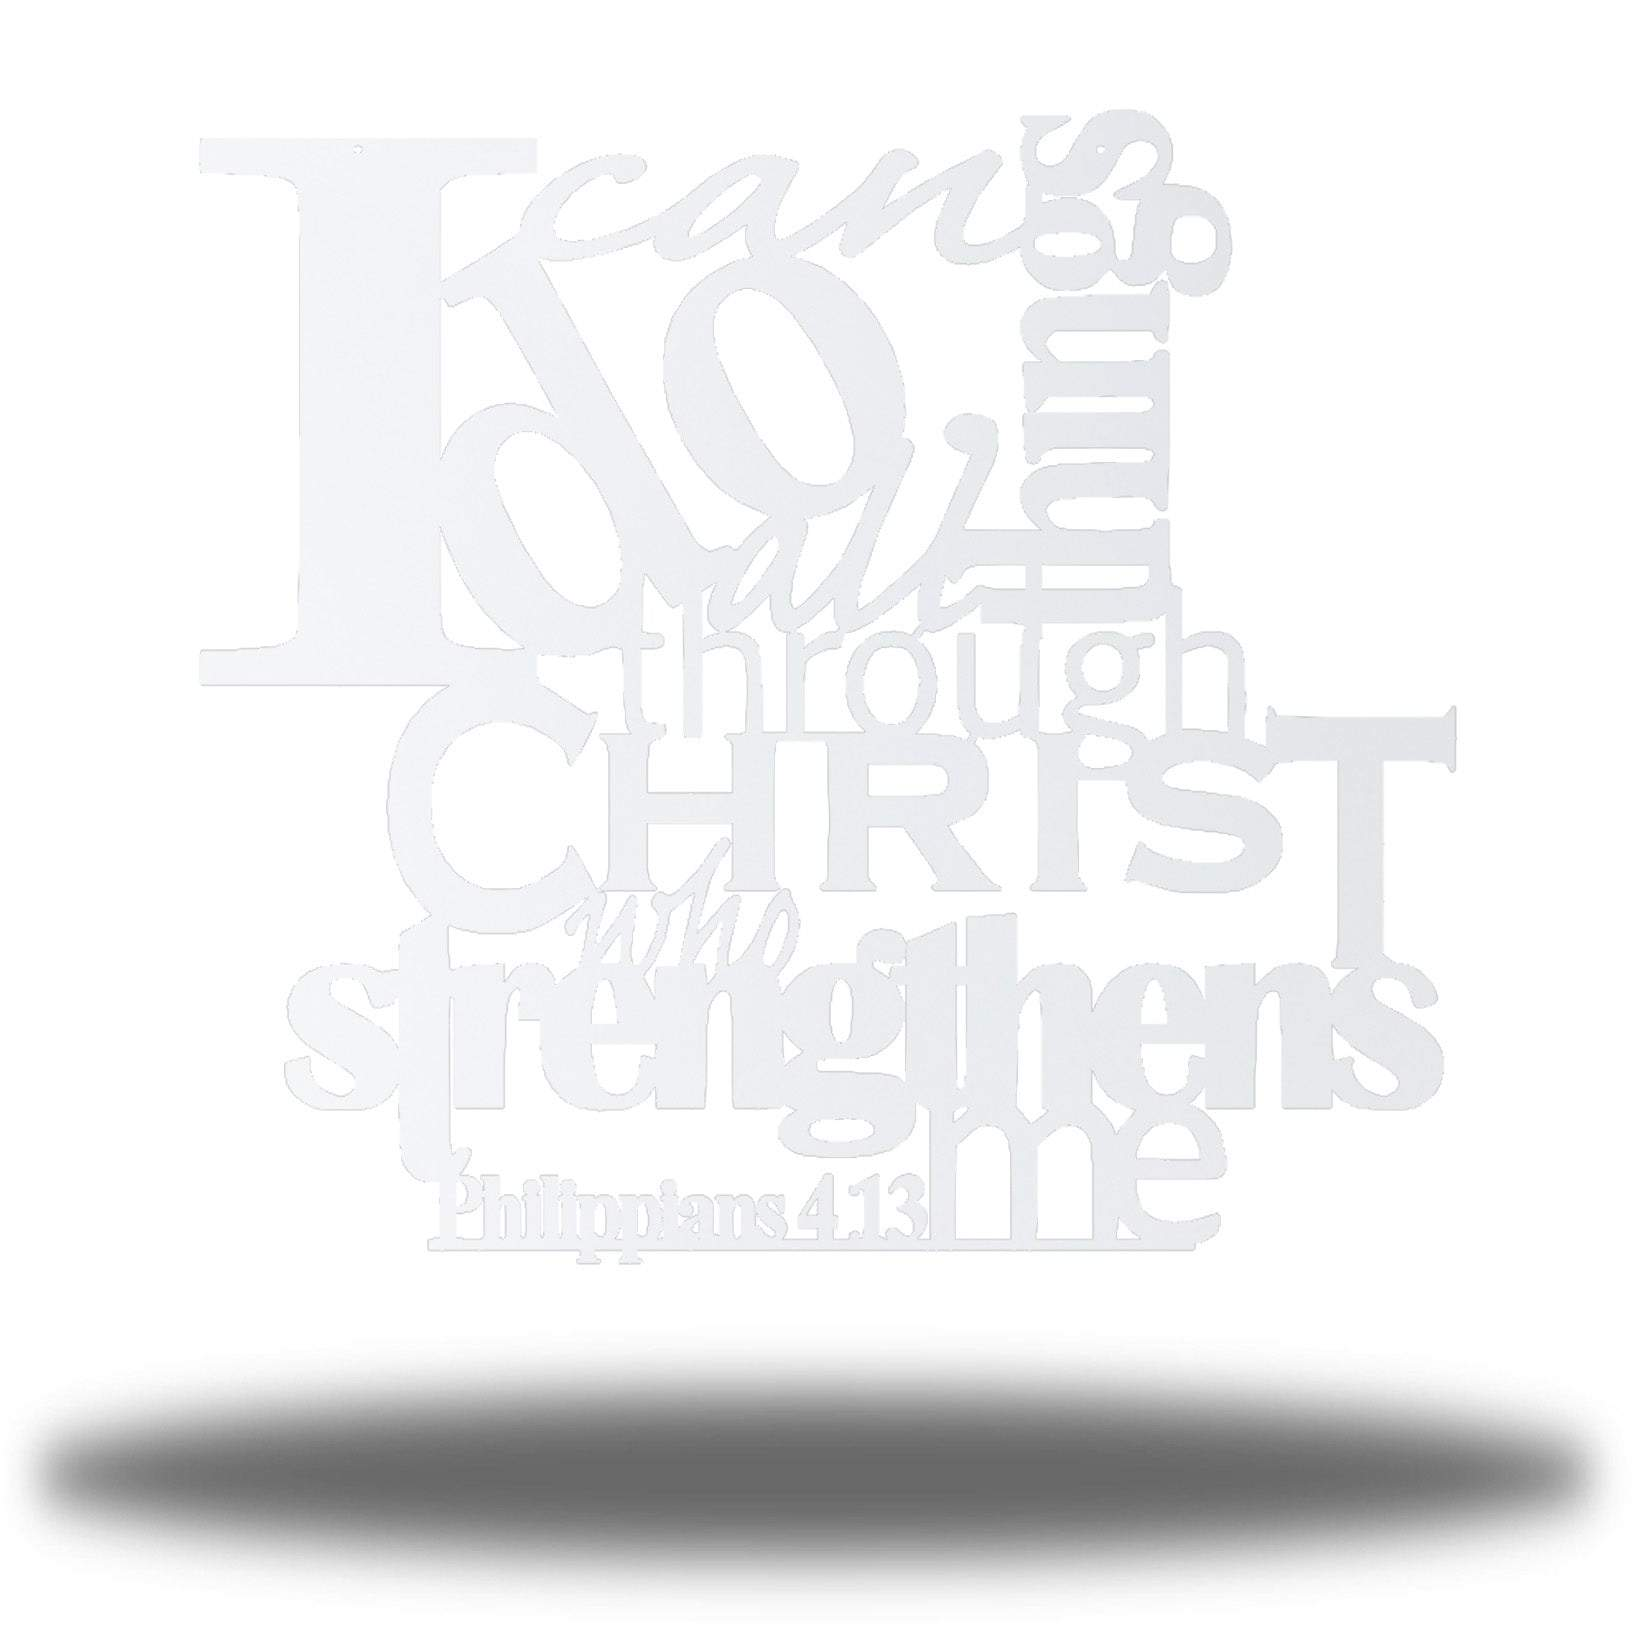 "White typographic design wall decoration that says ""I can do all things through Christ who strengthns me PHilippians 4:13"""